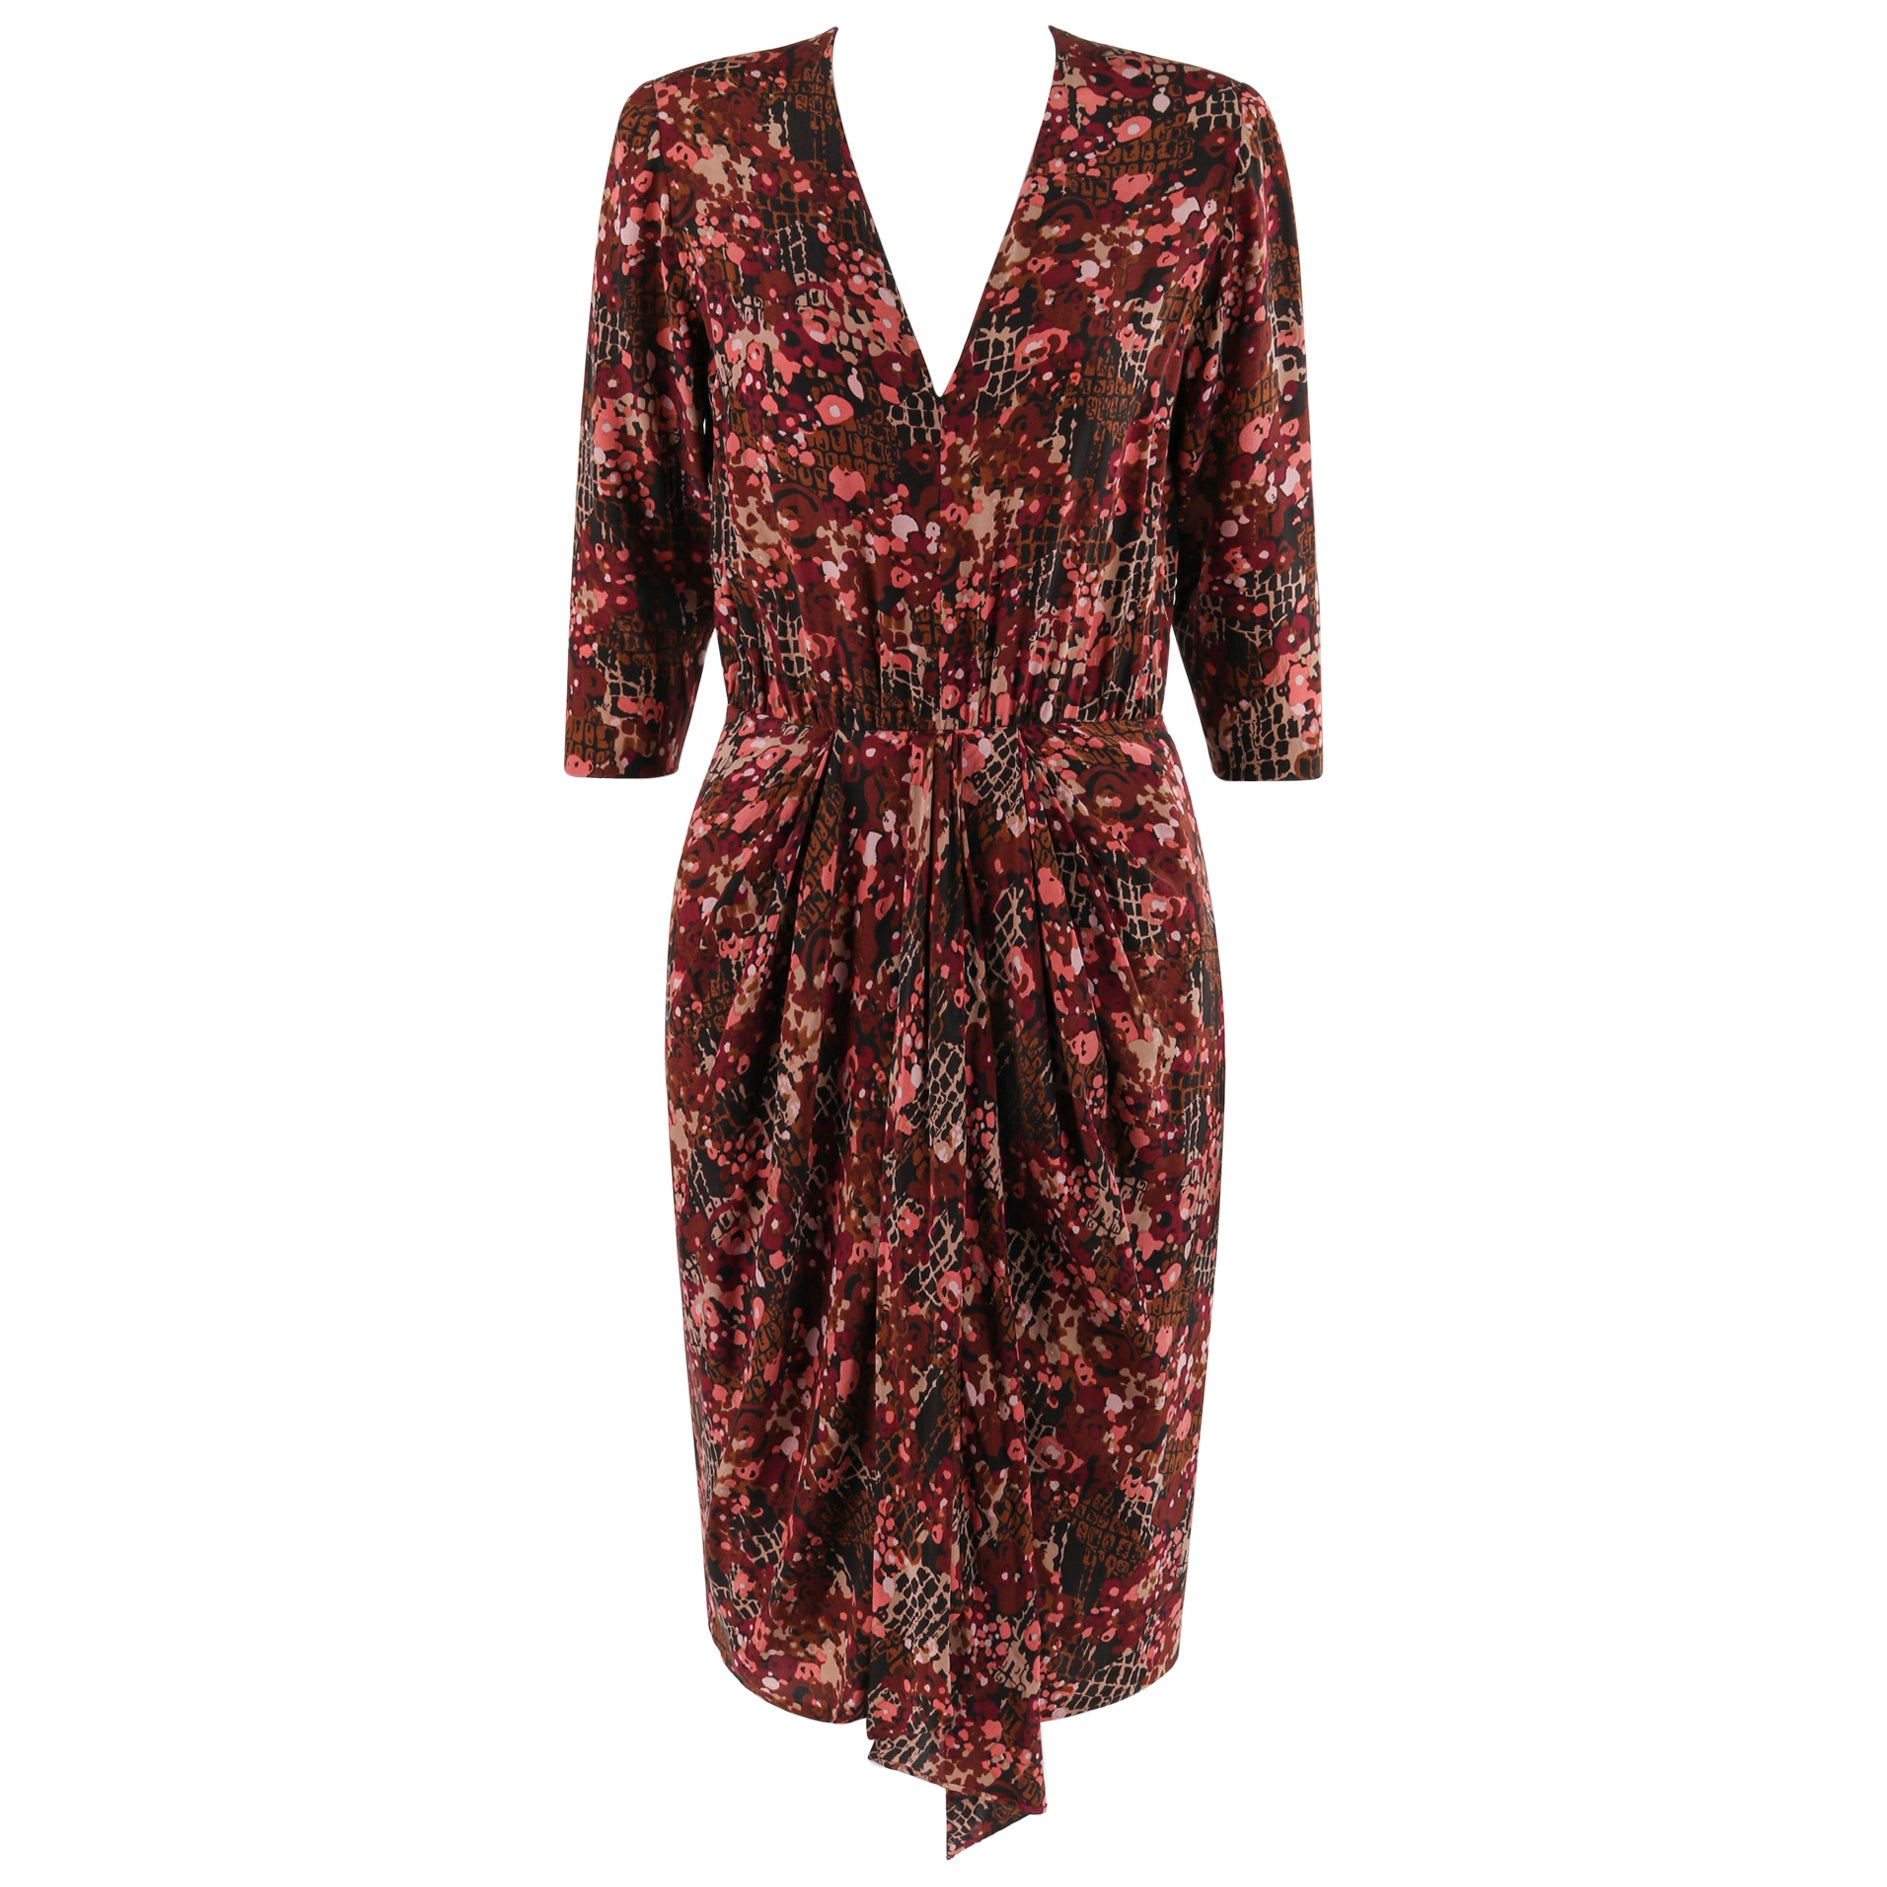 GIVENCHY c.1970's Haute Couture Silk Floral Print Sheath Dress Numbered